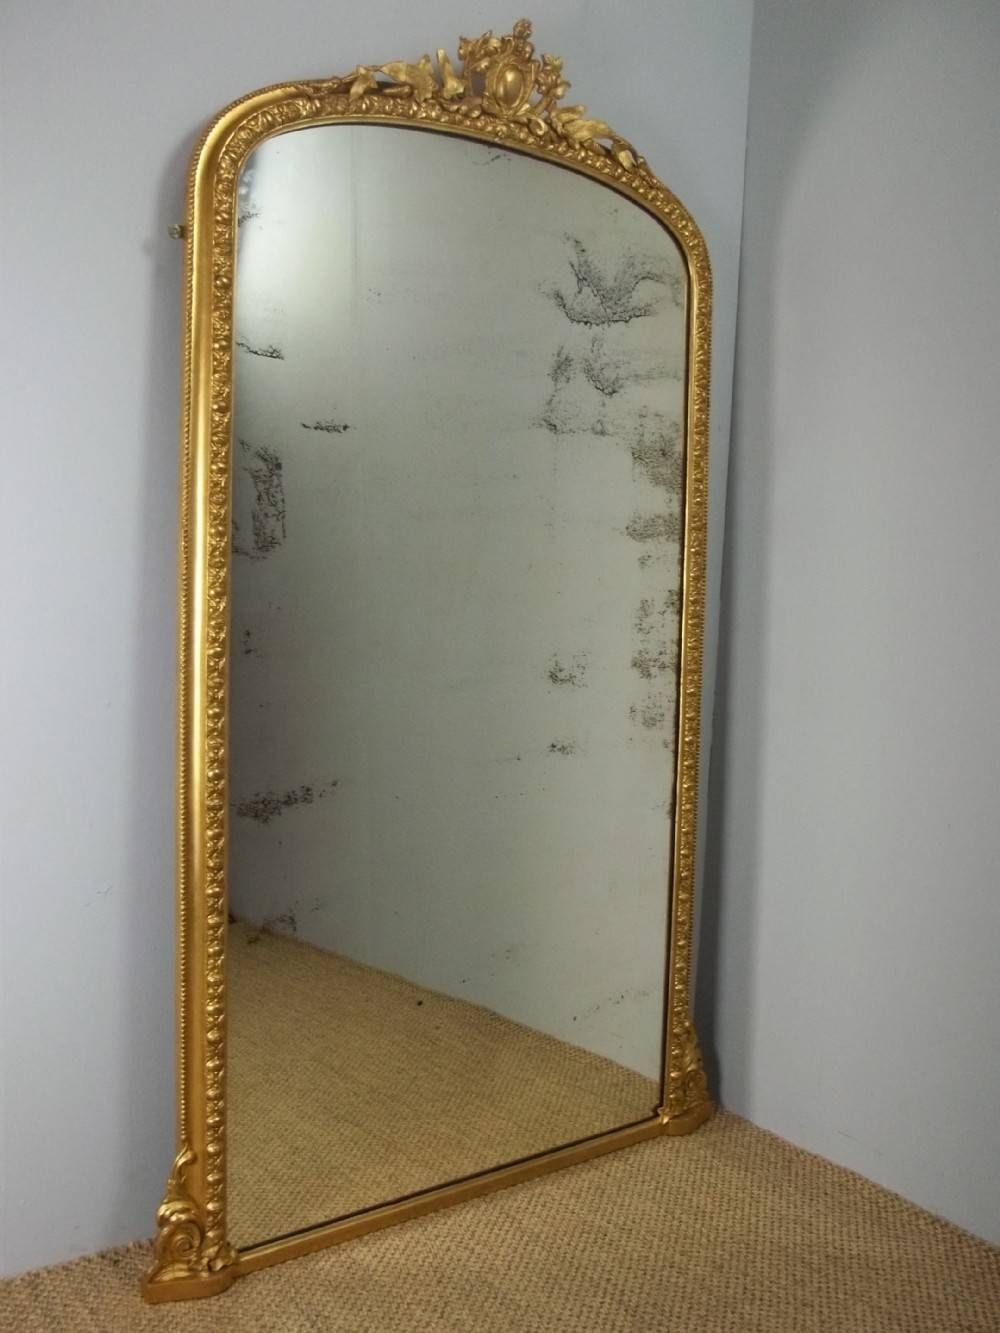 Antique Gilt Pier Console Cheval Dressing Room Wall Tall Narrow pertaining to Tall Narrow Mirrors (Image 3 of 15)